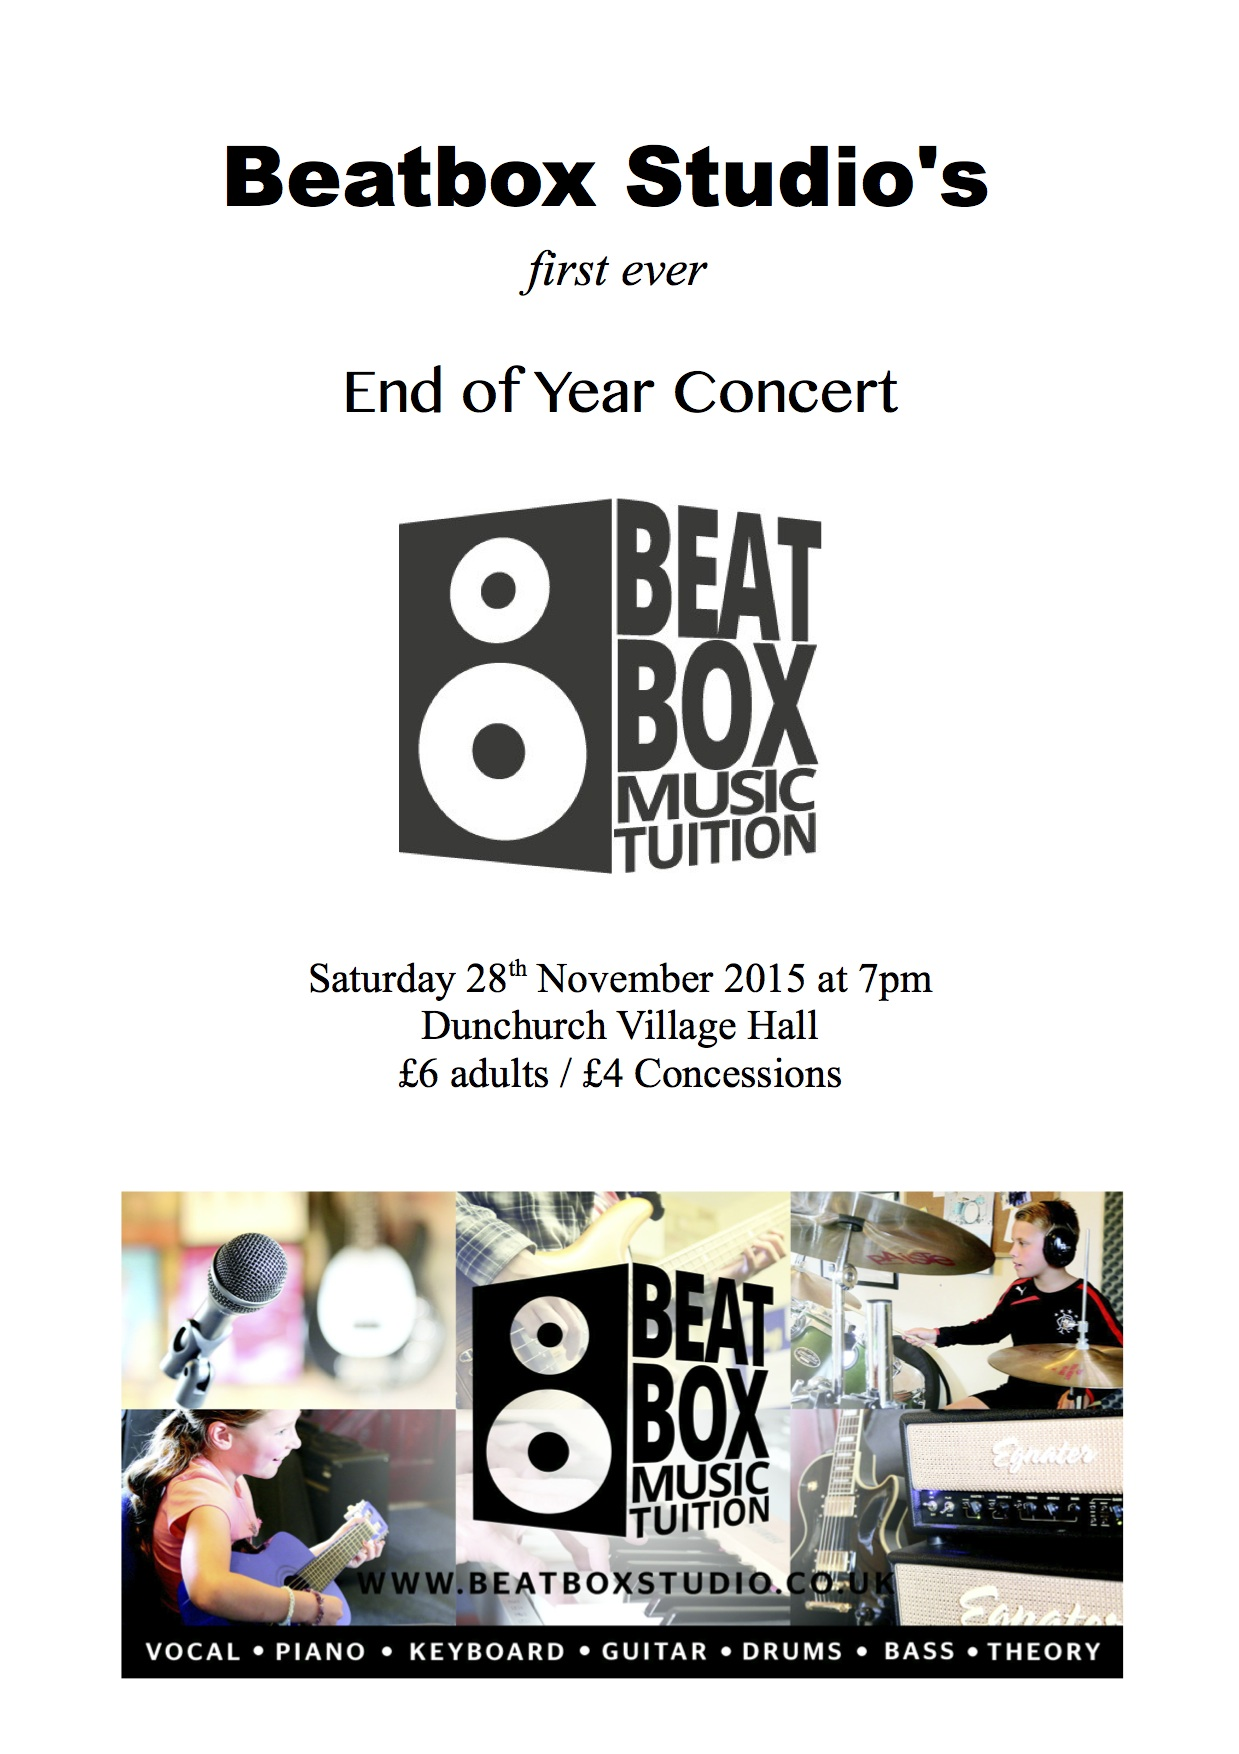 Our very first ever End of Year Concert